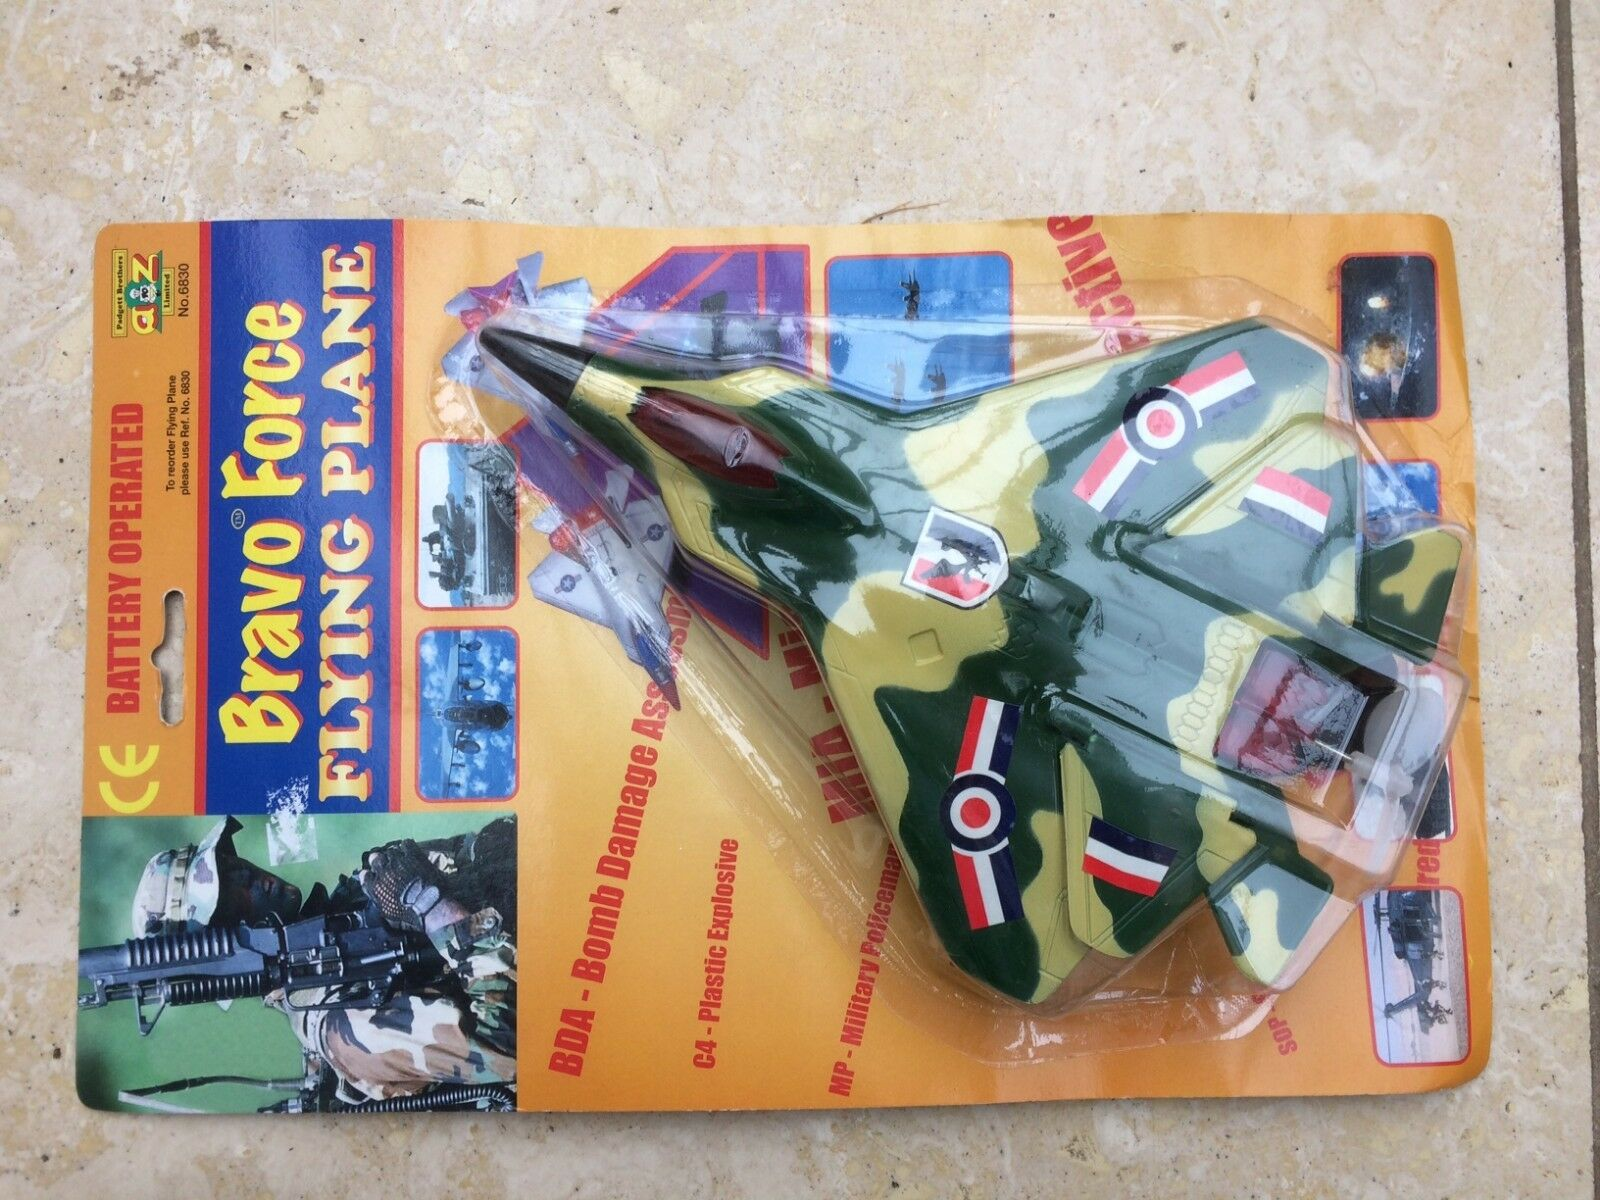 11 x Padgett Brothers 6830 Bravo Force Fliegening Planes flies in circle + sounds